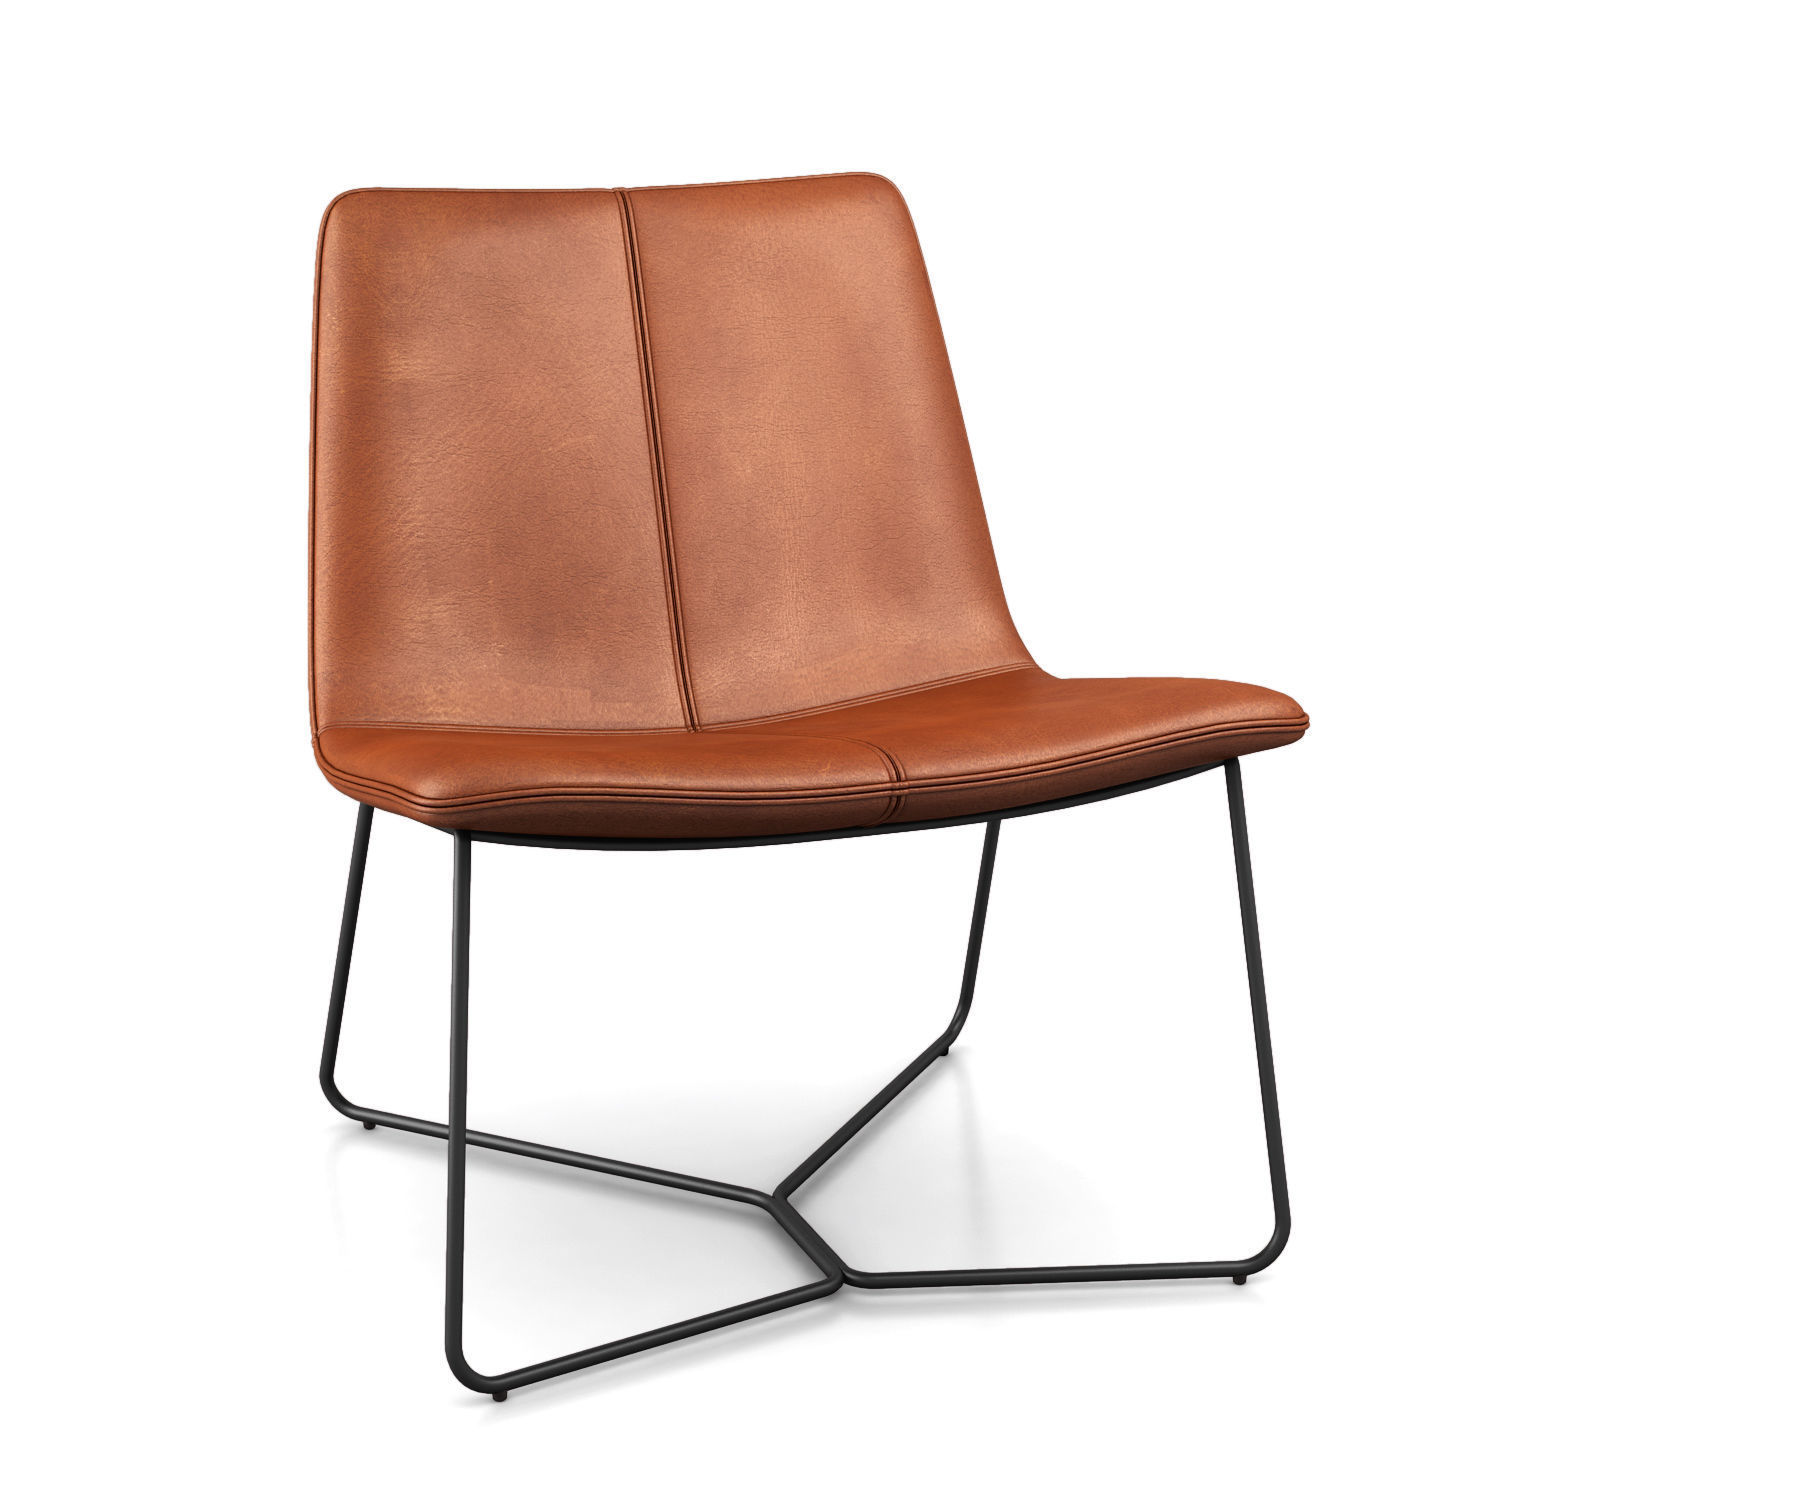 Prime Slope Leather Lounge Chair By West Elm 3D Model Ibusinesslaw Wood Chair Design Ideas Ibusinesslaworg